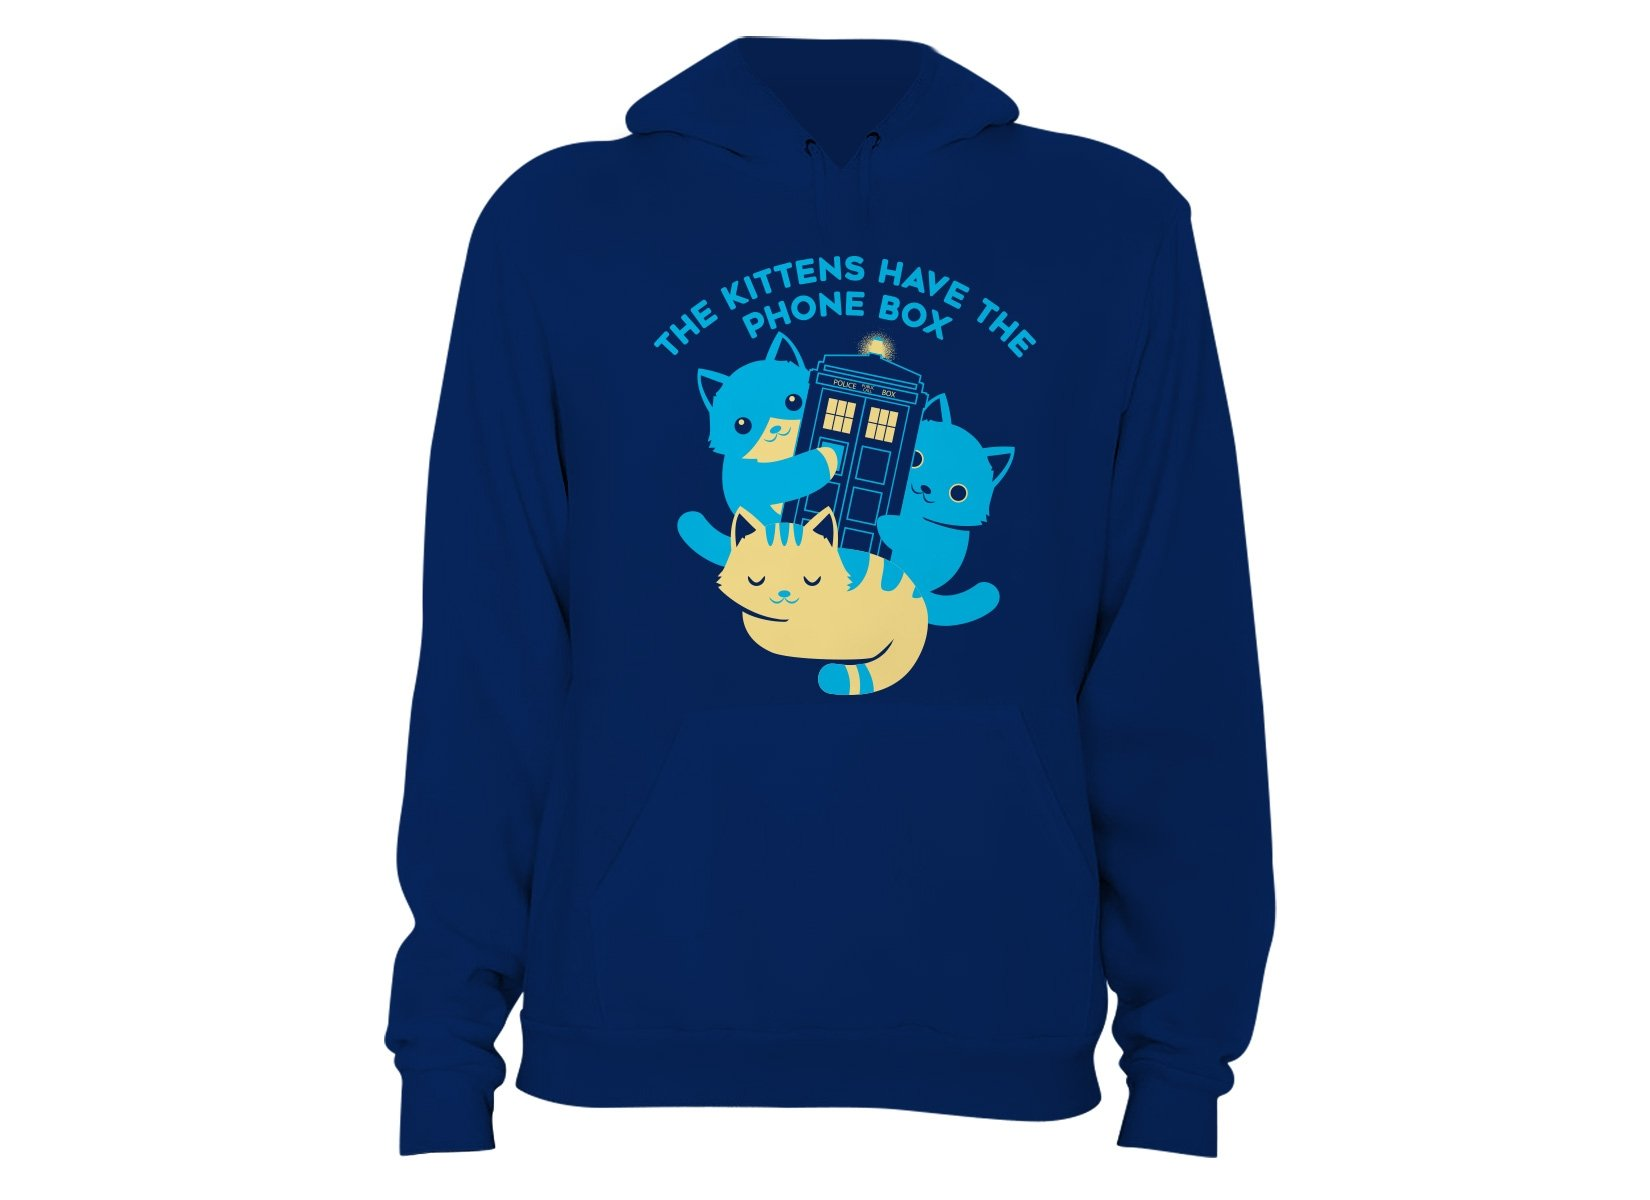 The Kittens Have The Phone Box on Hoodie